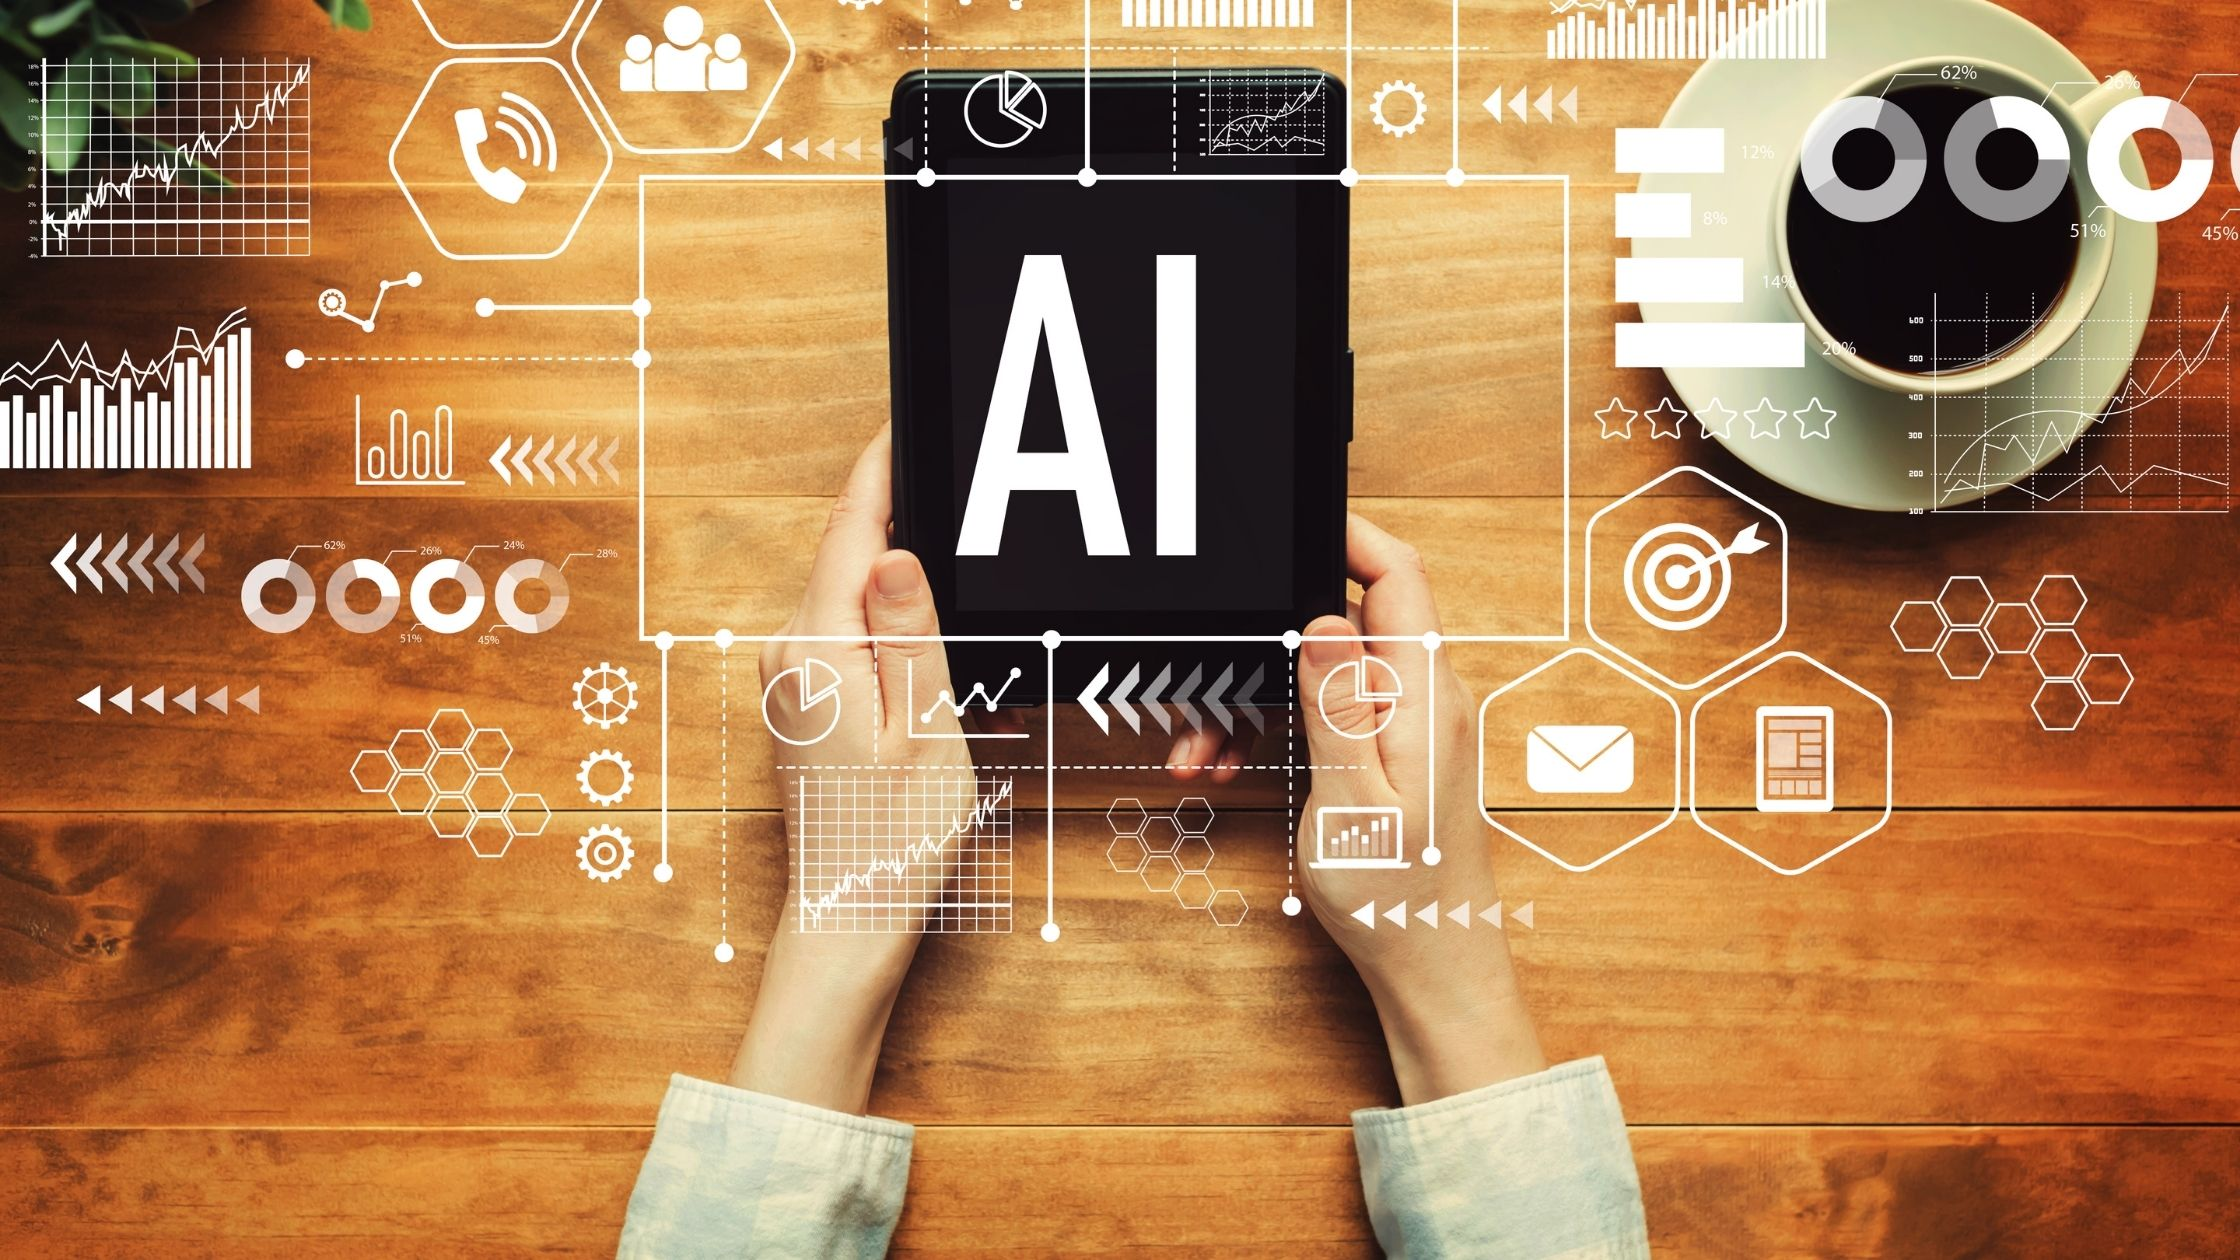 Humans in the Age of Artificial Intelligence: Why Real People Still Matter